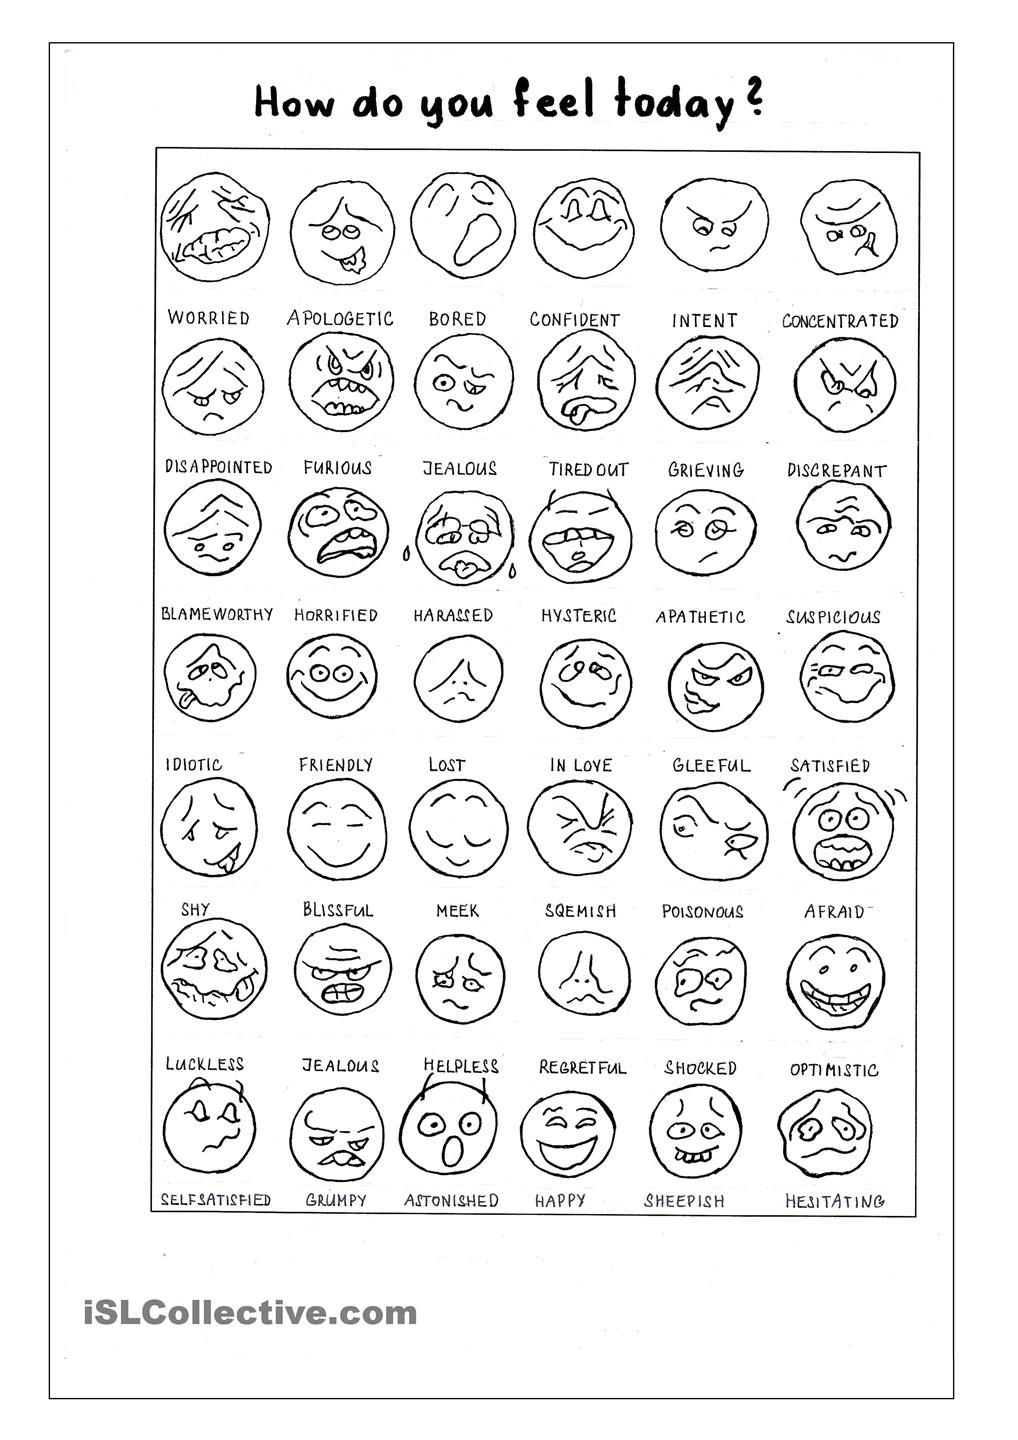 worksheet Esol Worksheets how do you feel today classroom decoration pinterest language arts